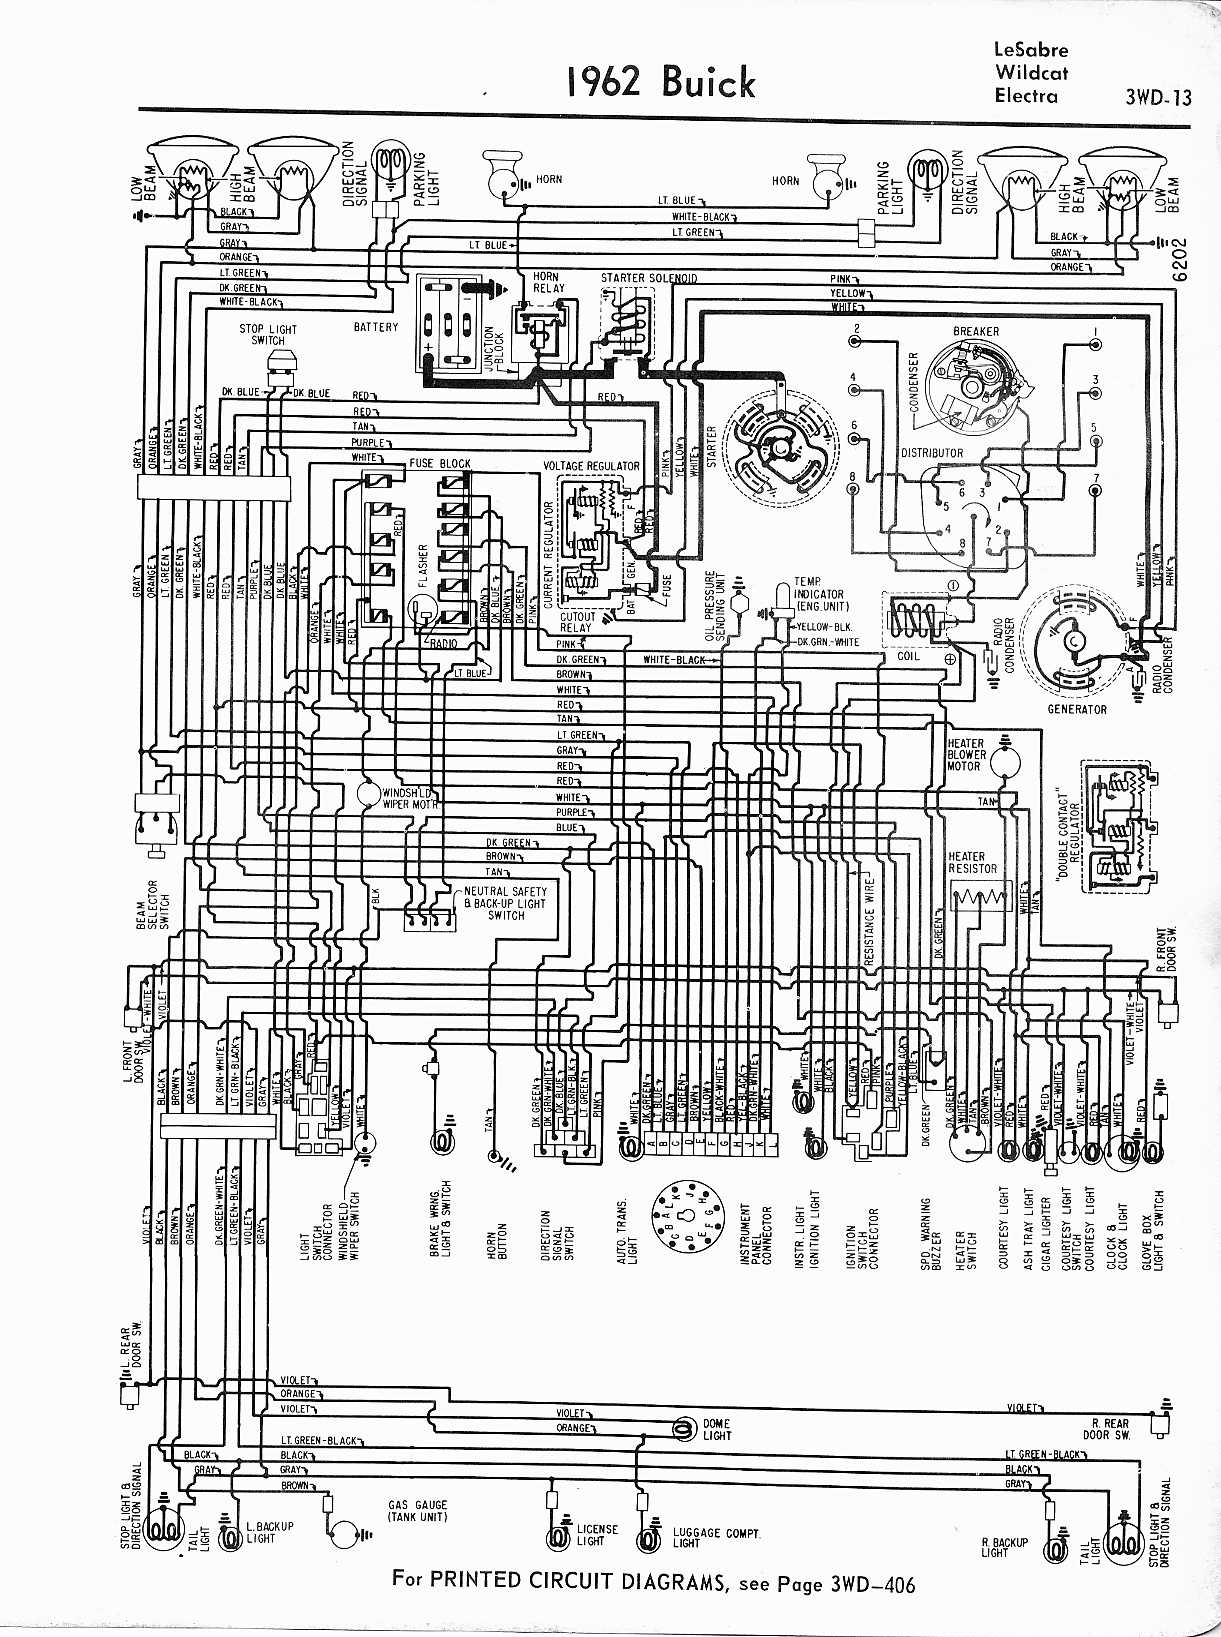 1971 Buick Skylark Wiring Diagram Starting Know About Wiring Diagram \u2022  70 Buick Skylark Custom 70 Skylark Wiring Diagram